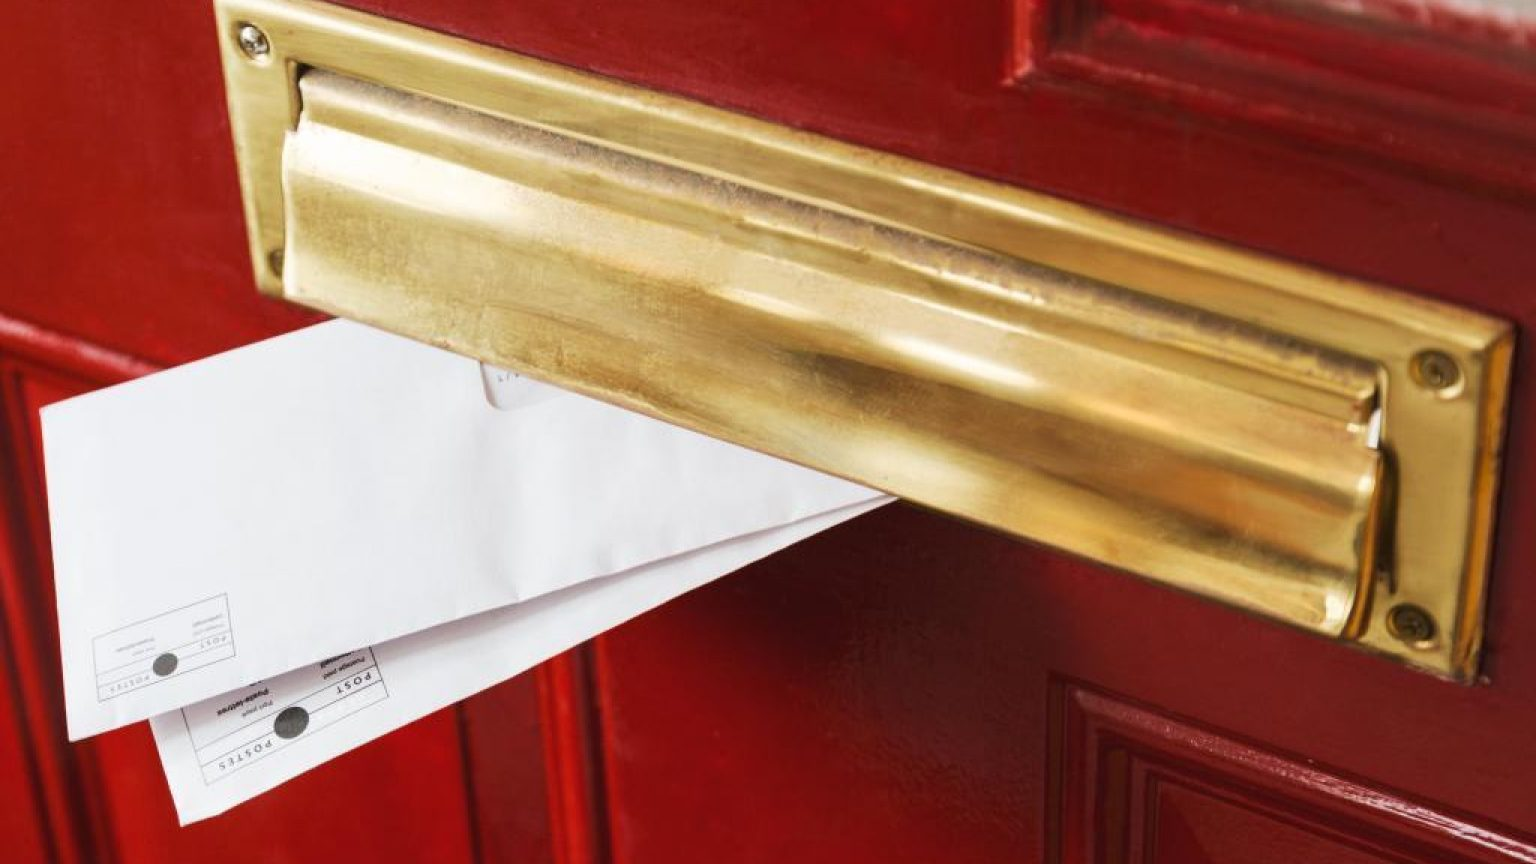 Mail peeks out from a brass letterbox 1024x683